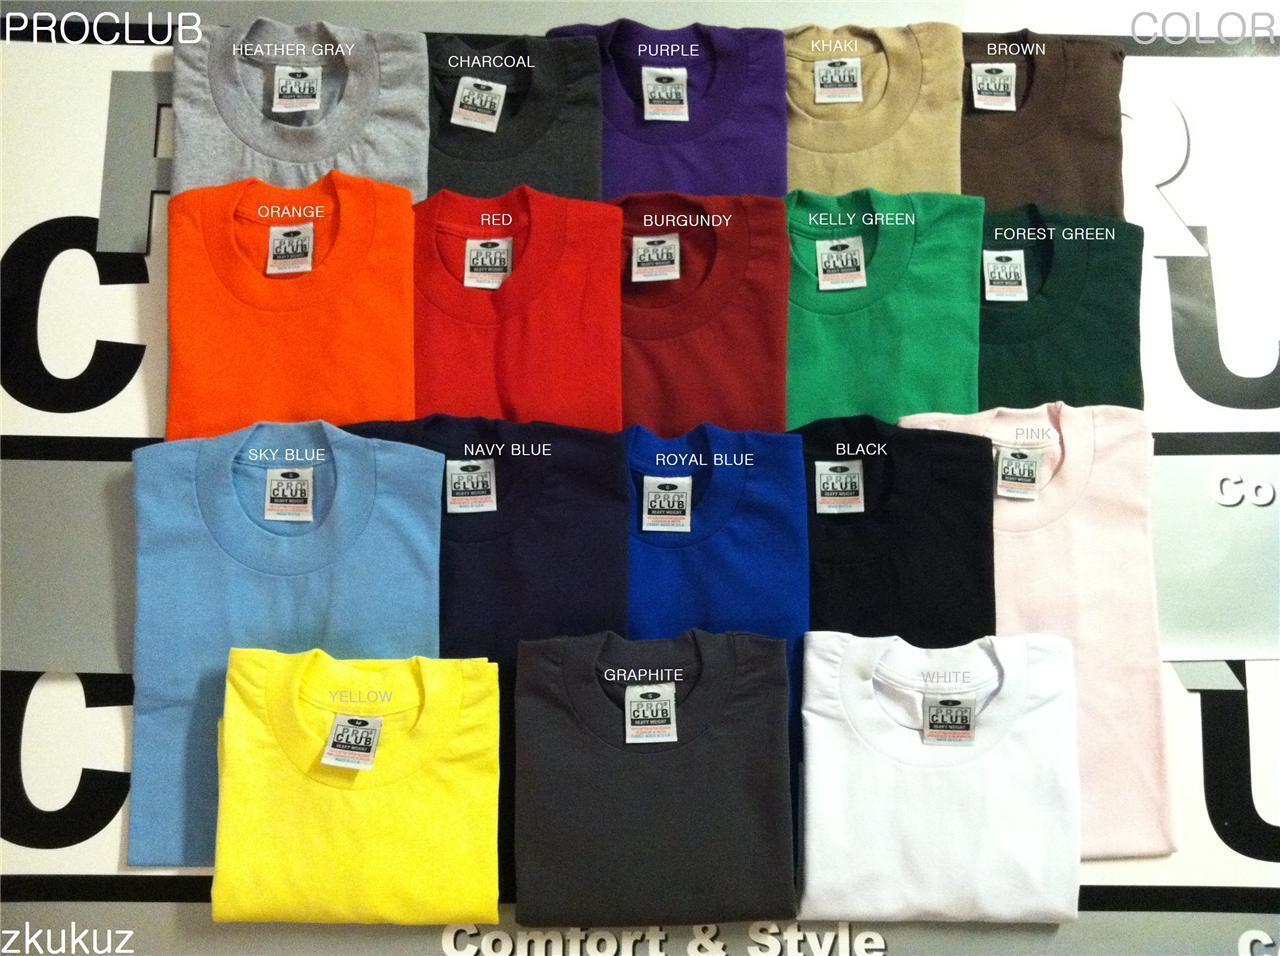 12 NEW PROCLUB HEAVY WEIGHT T-SHIRT COLOR PLAIN PRO CLUB TEE BLANK 4XL-5XL 12PC